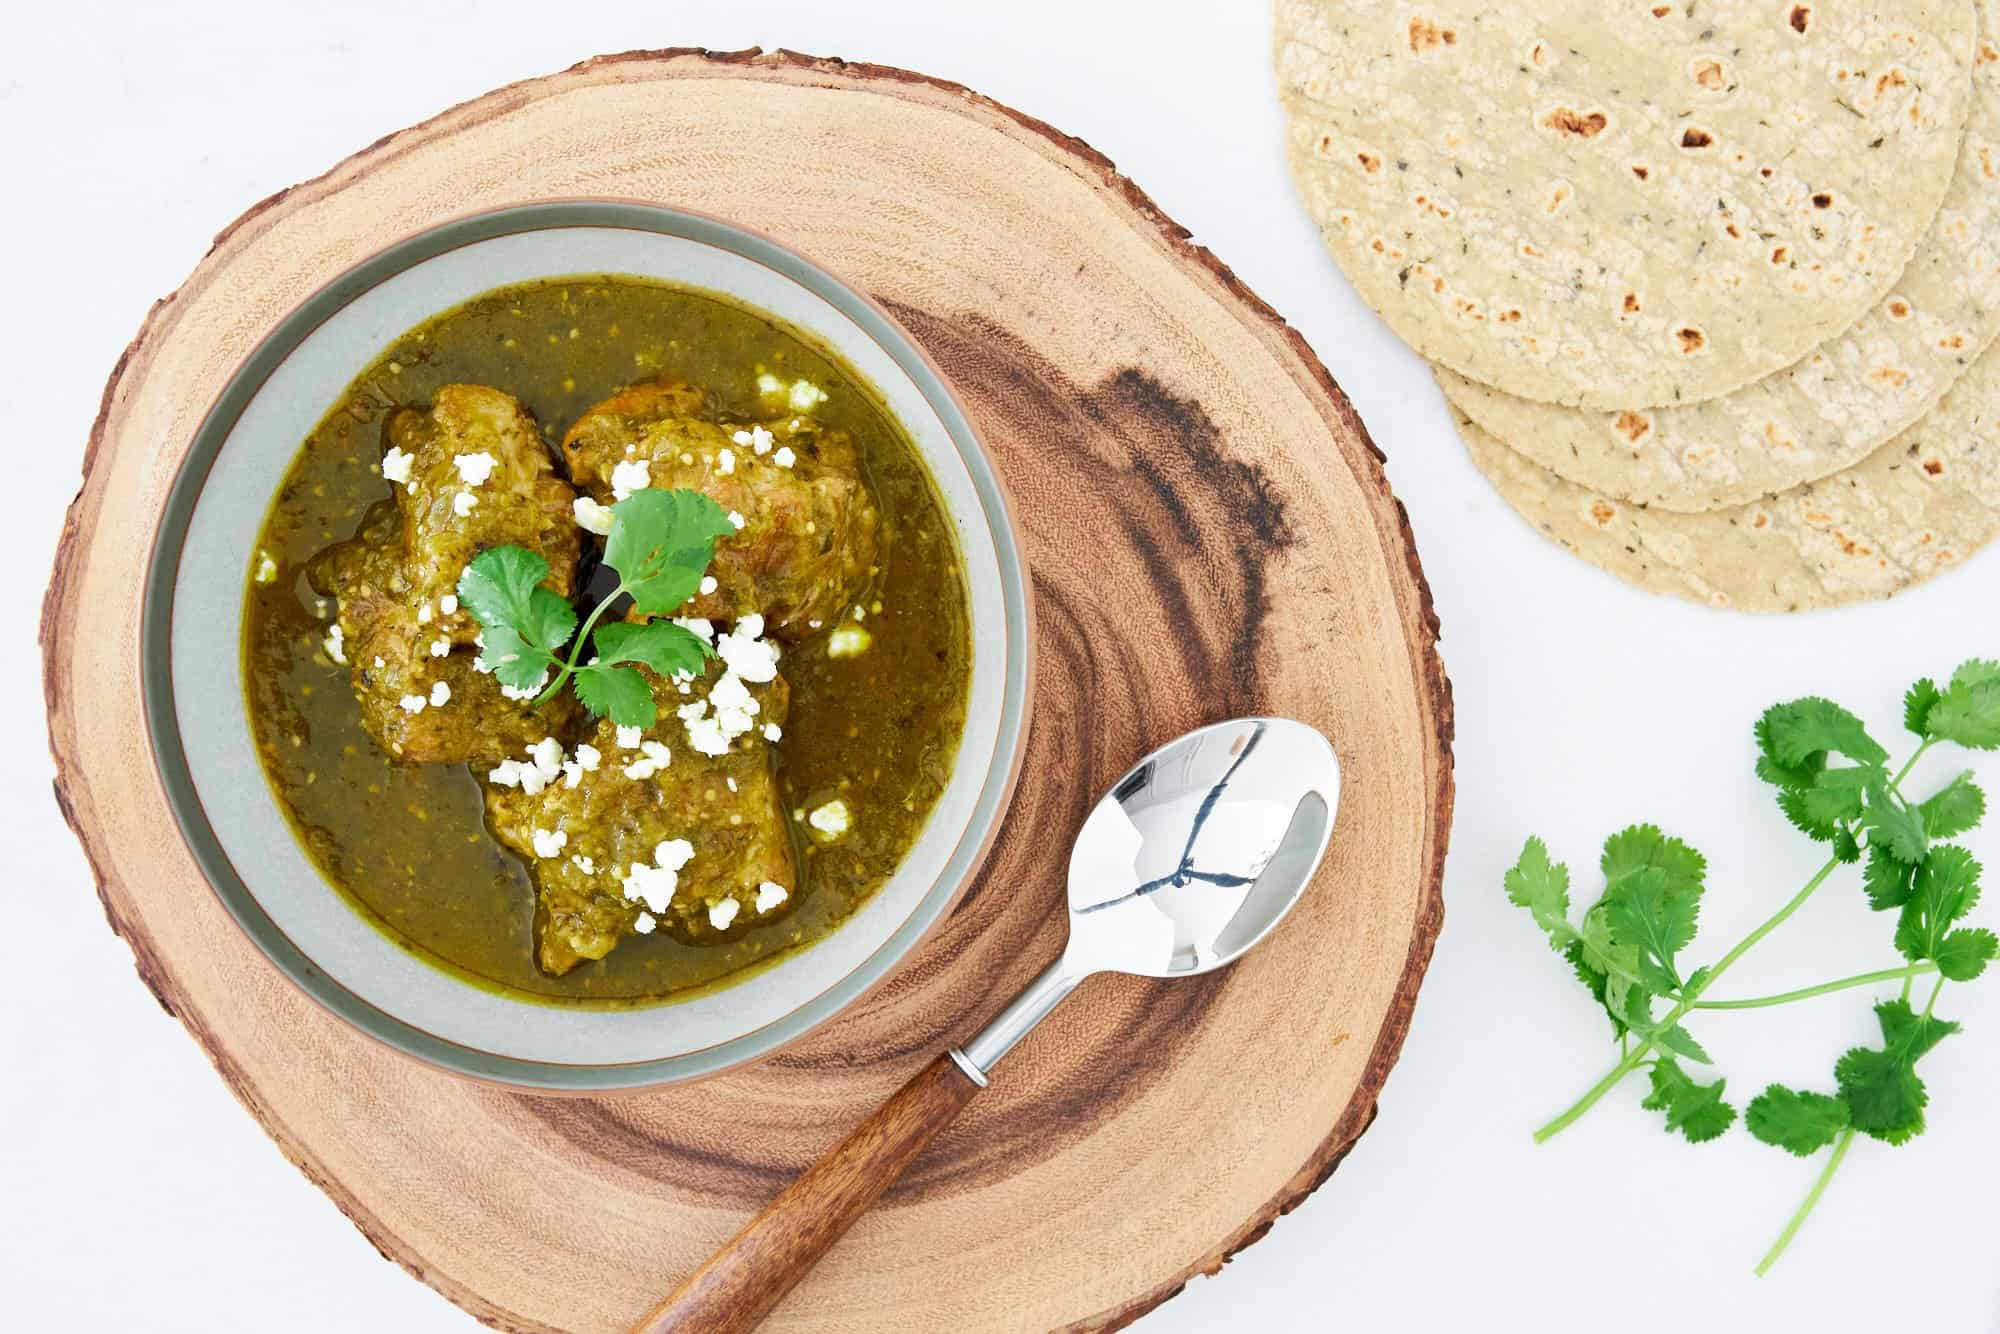 This Chile Verde recipe includes a few simple tricks to turn a few simple ingredients into this mouthwatering stew.